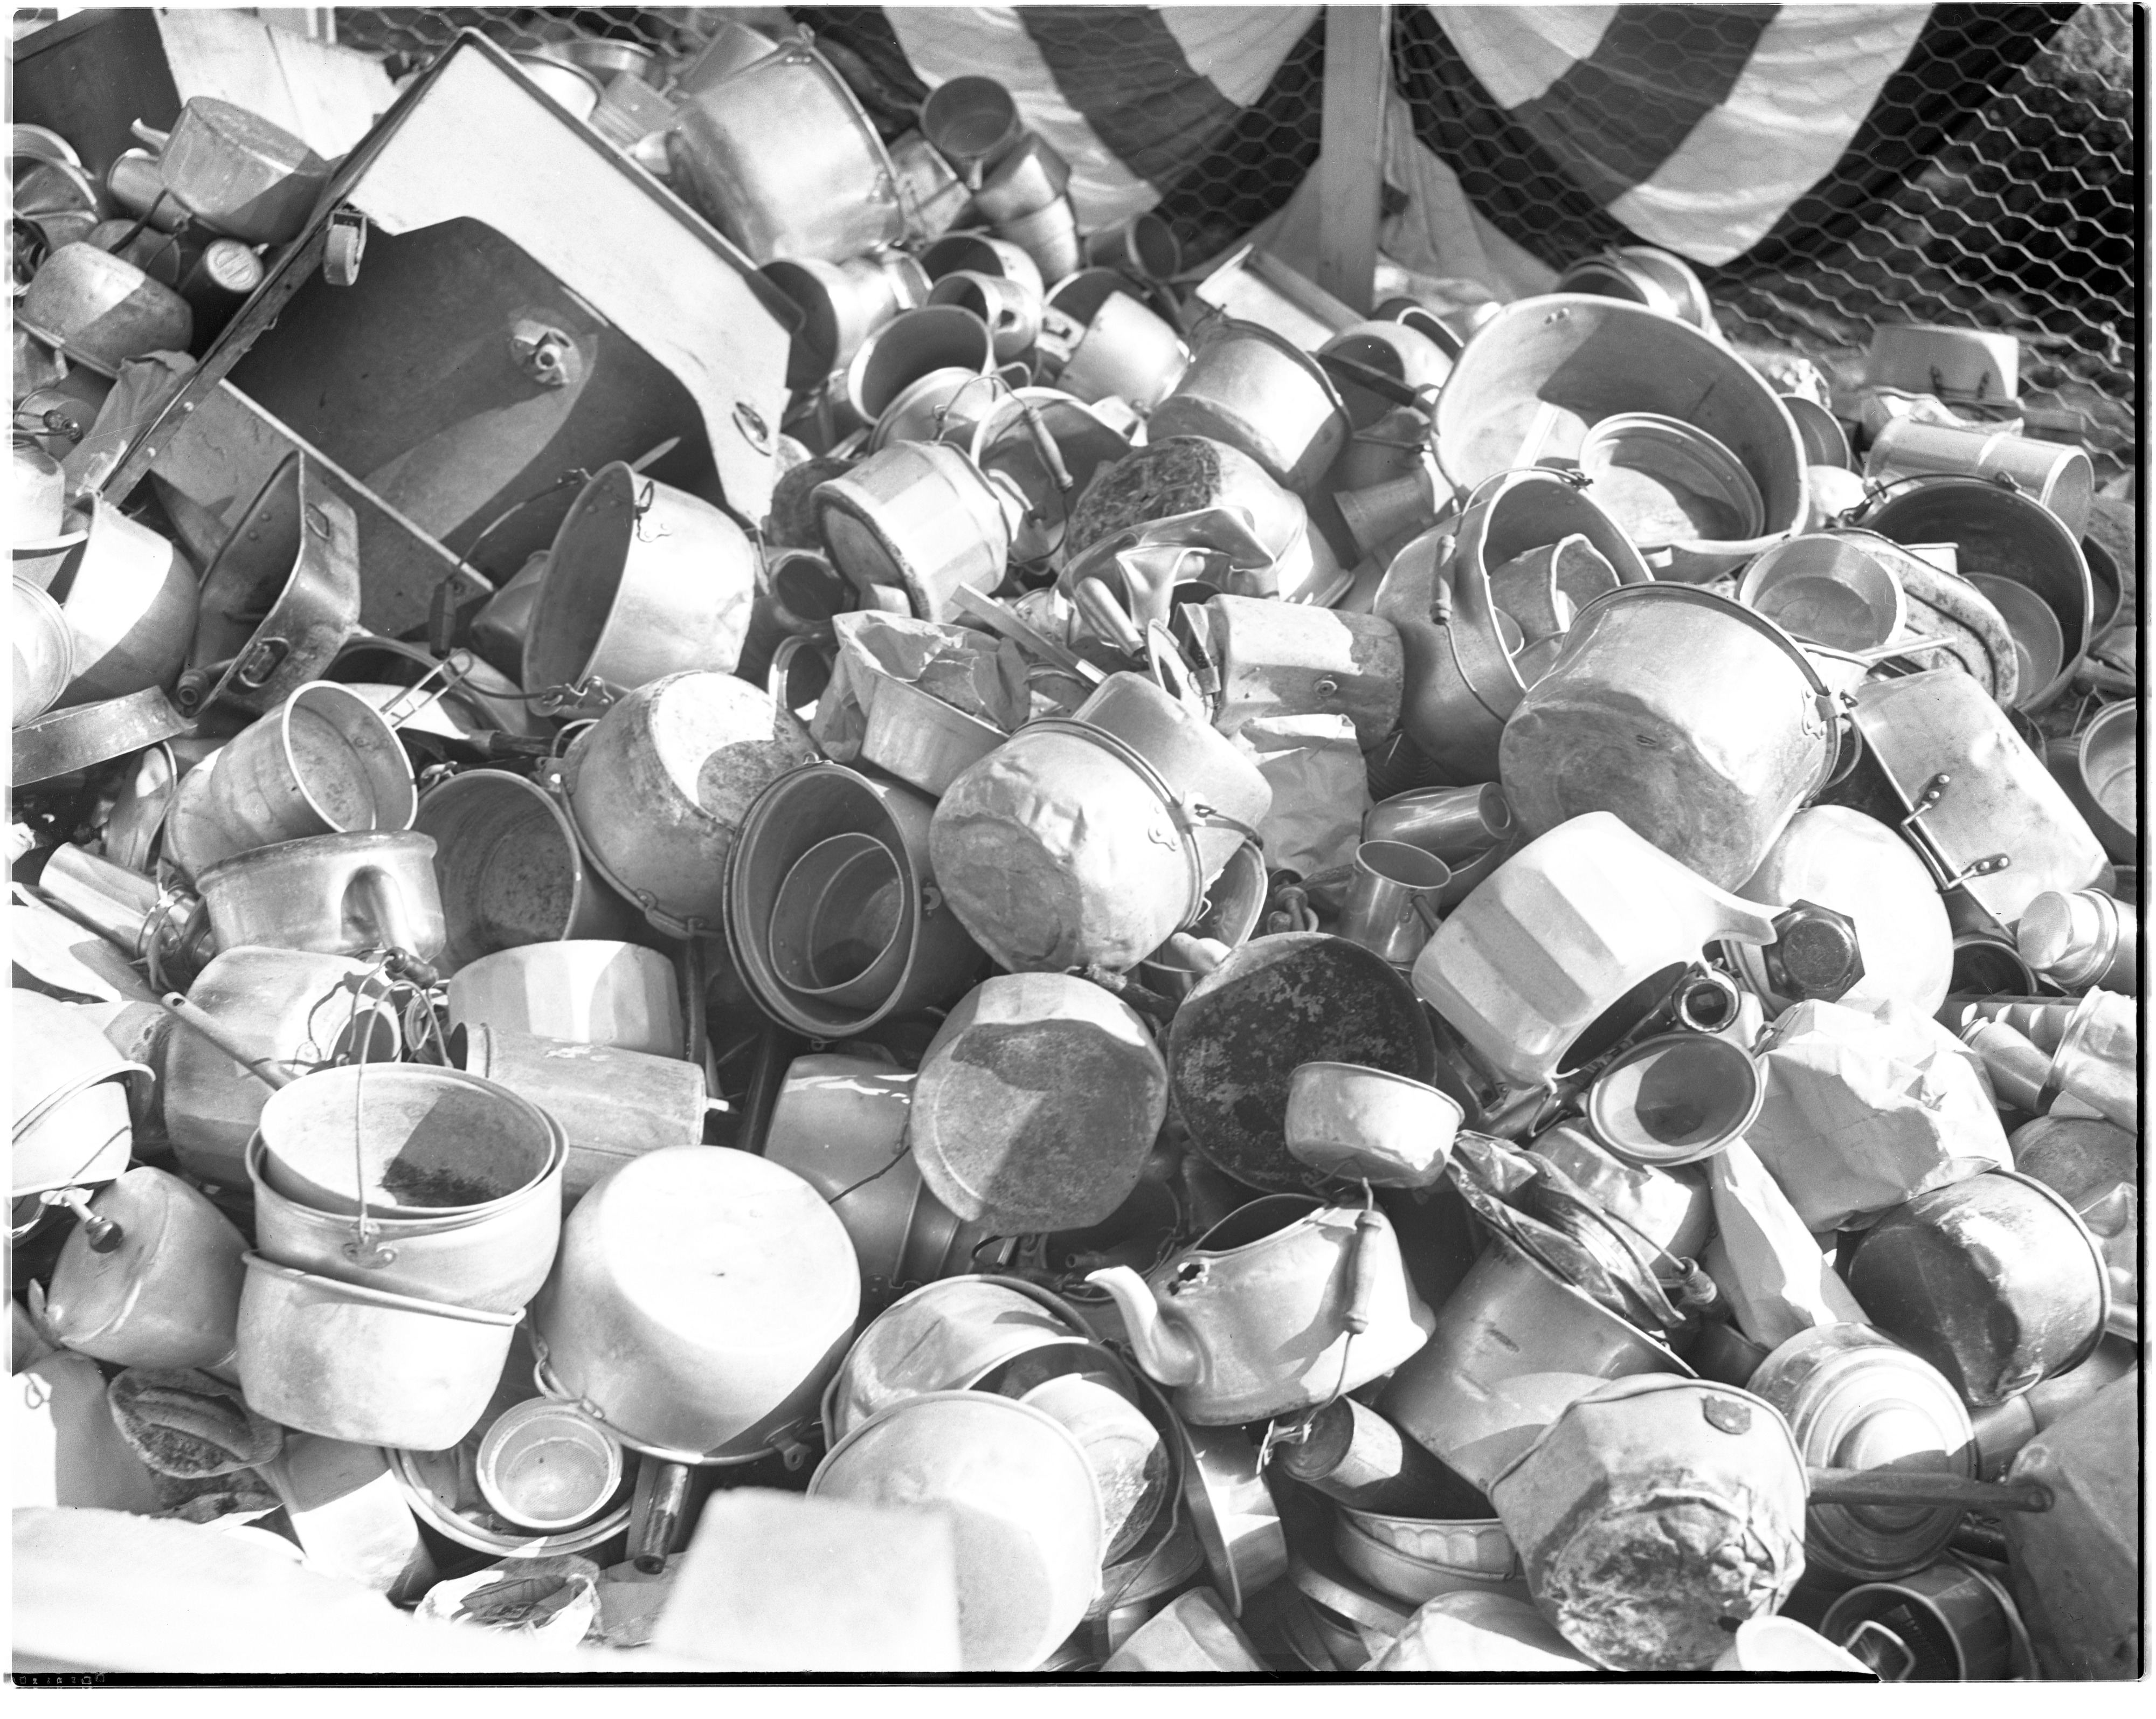 Aluminum scrap drive on Courthouse lawn, 1941 image